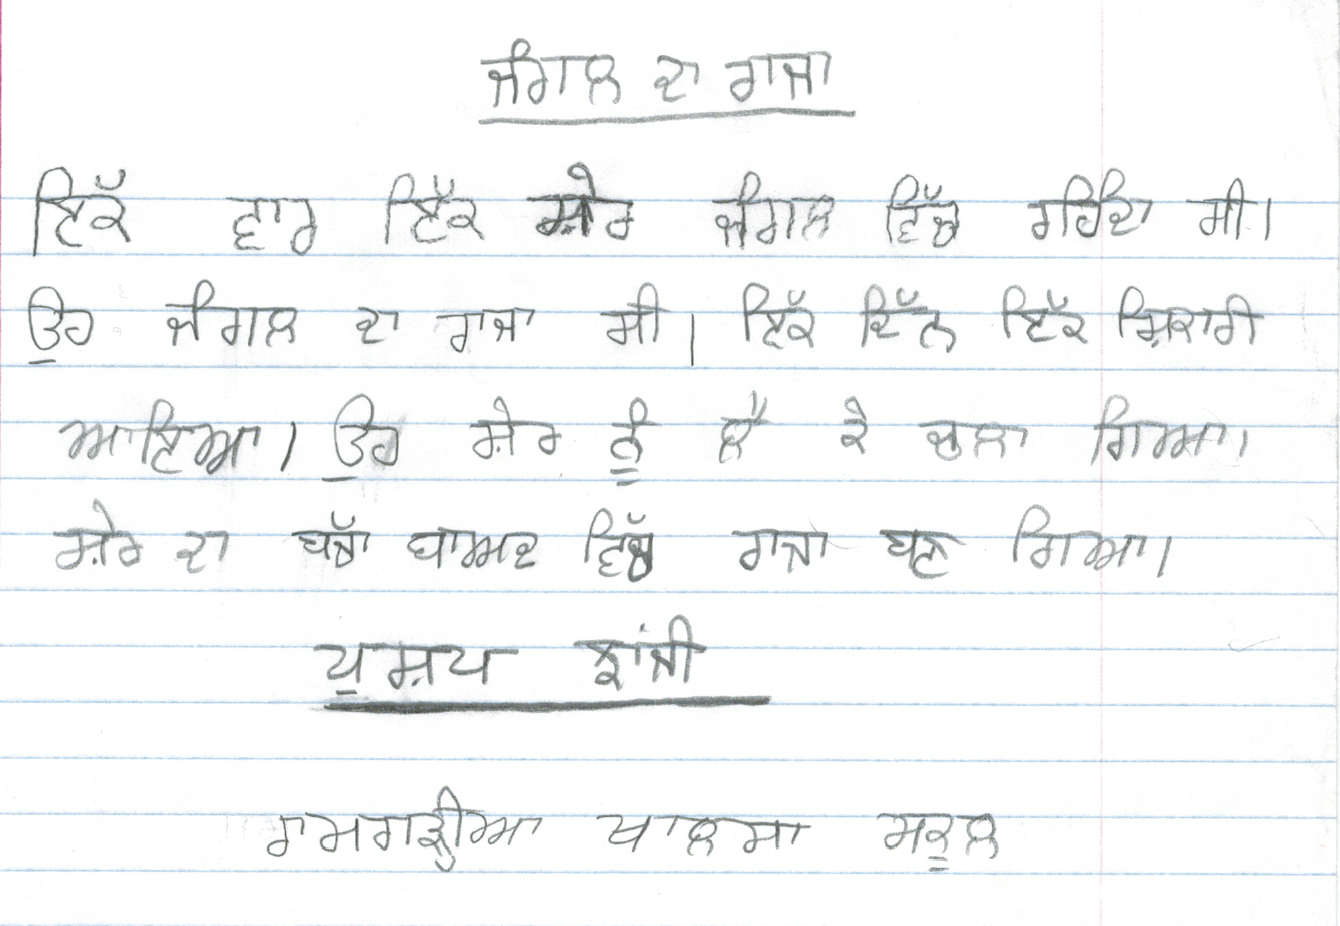 mother teresa essay in punjabi language  mother teresa essay in punjabi language